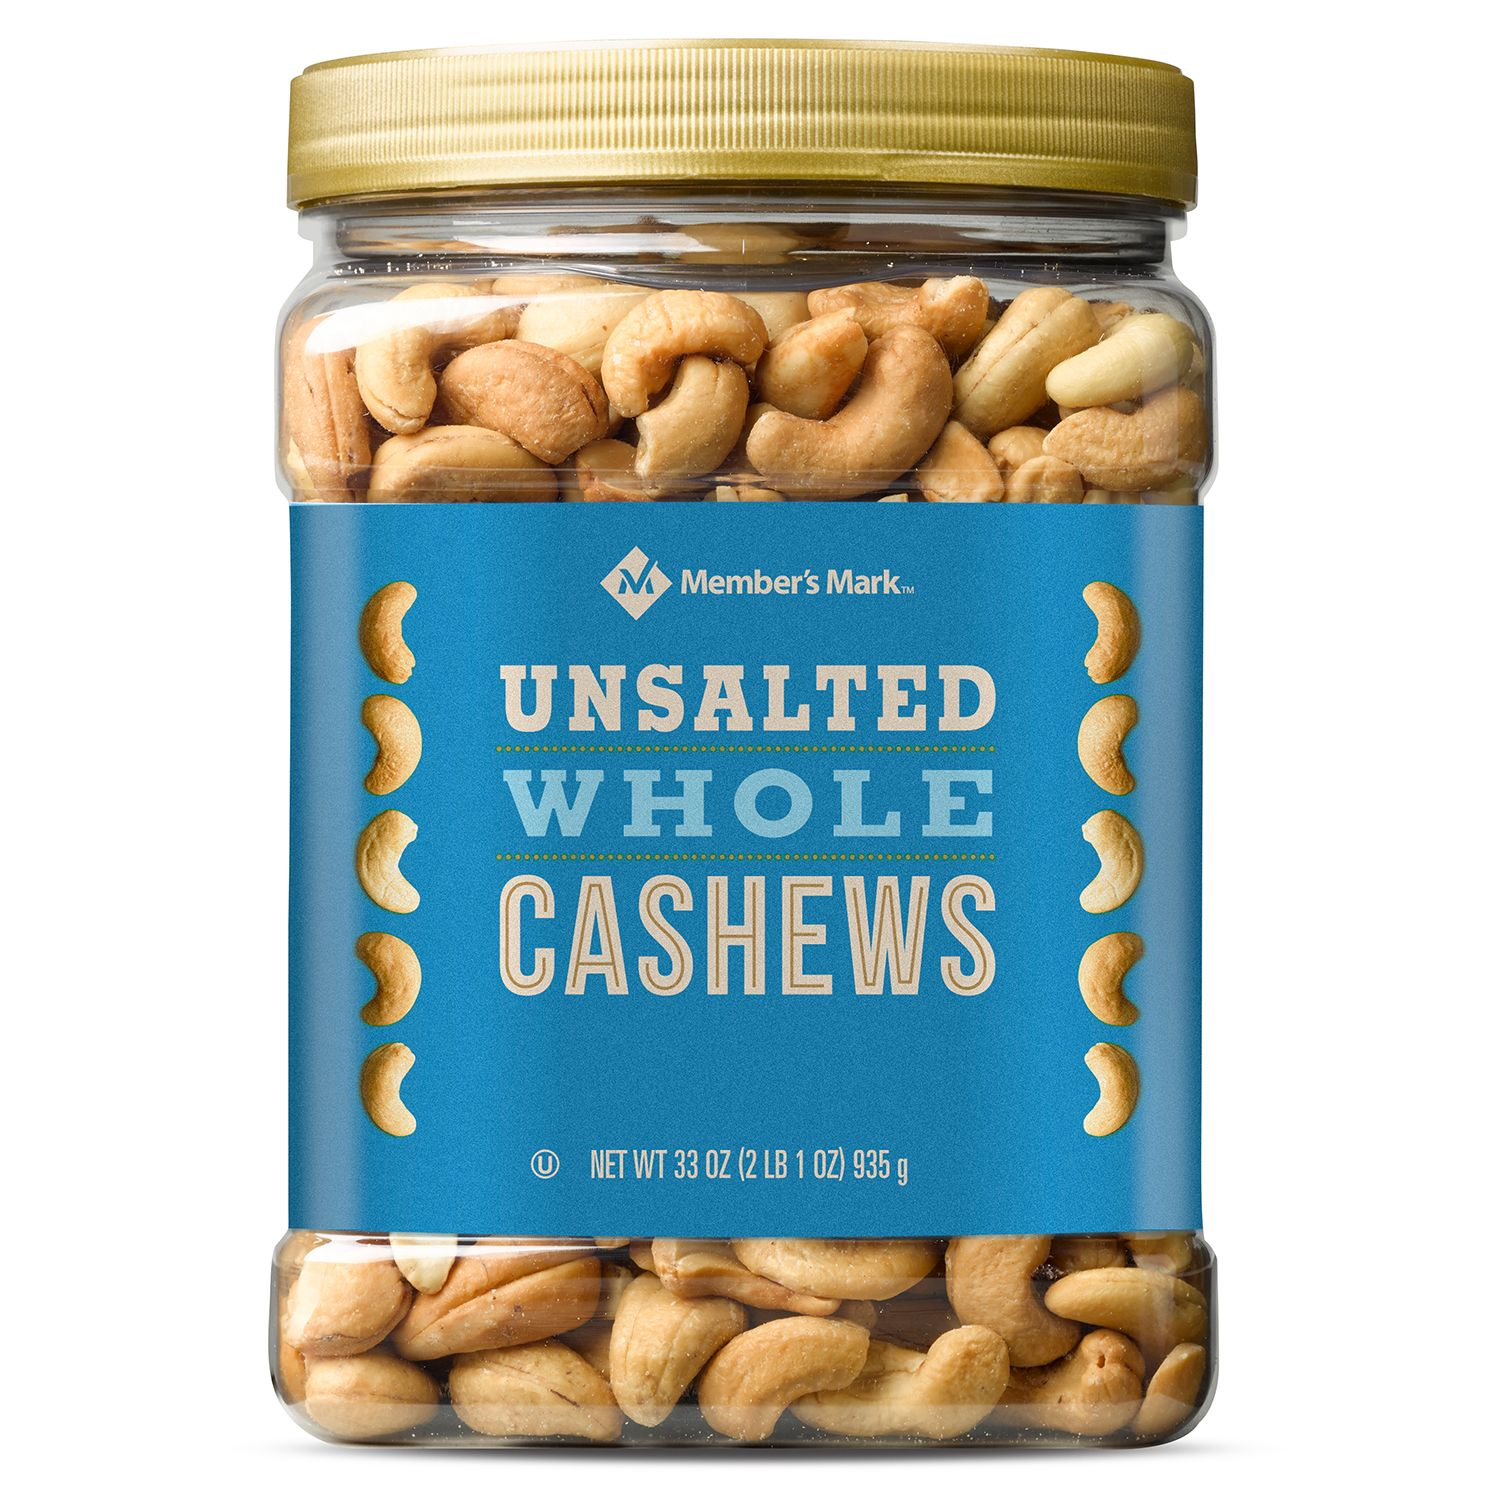 Member's Mark Unsalted Whole Cashews